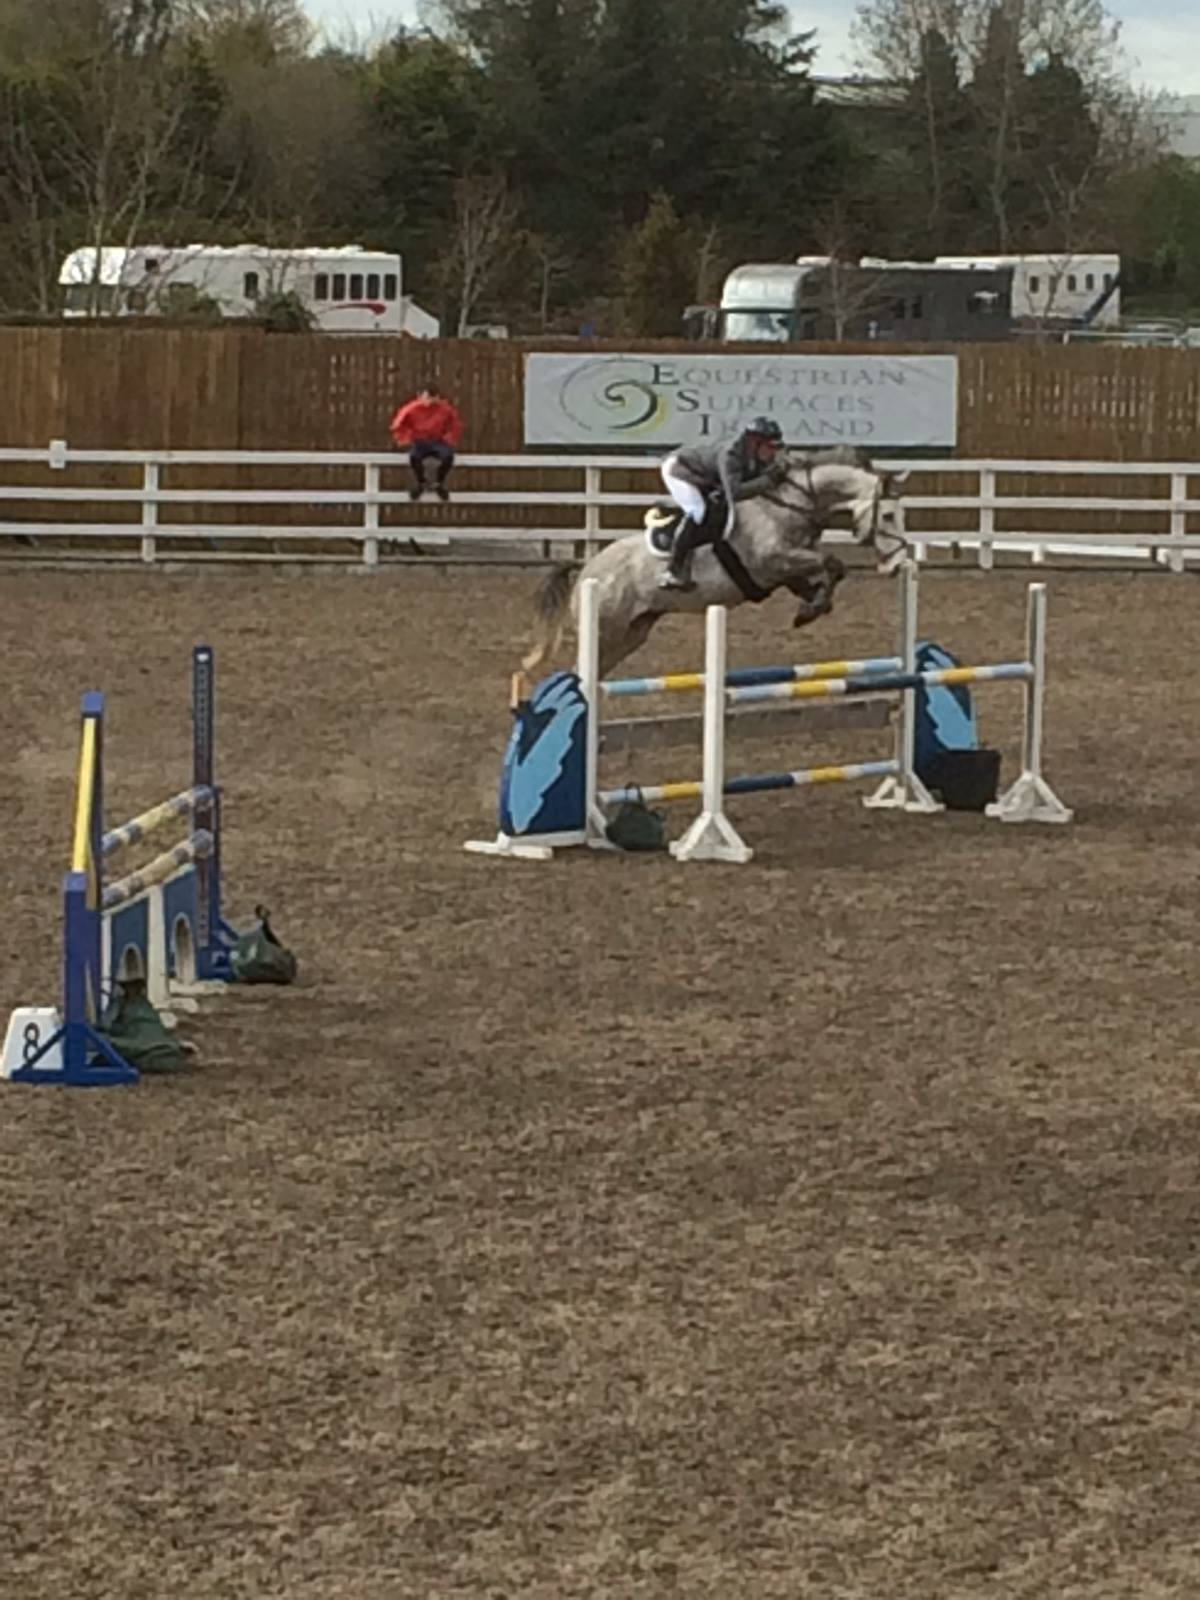 Show Jumping competition training